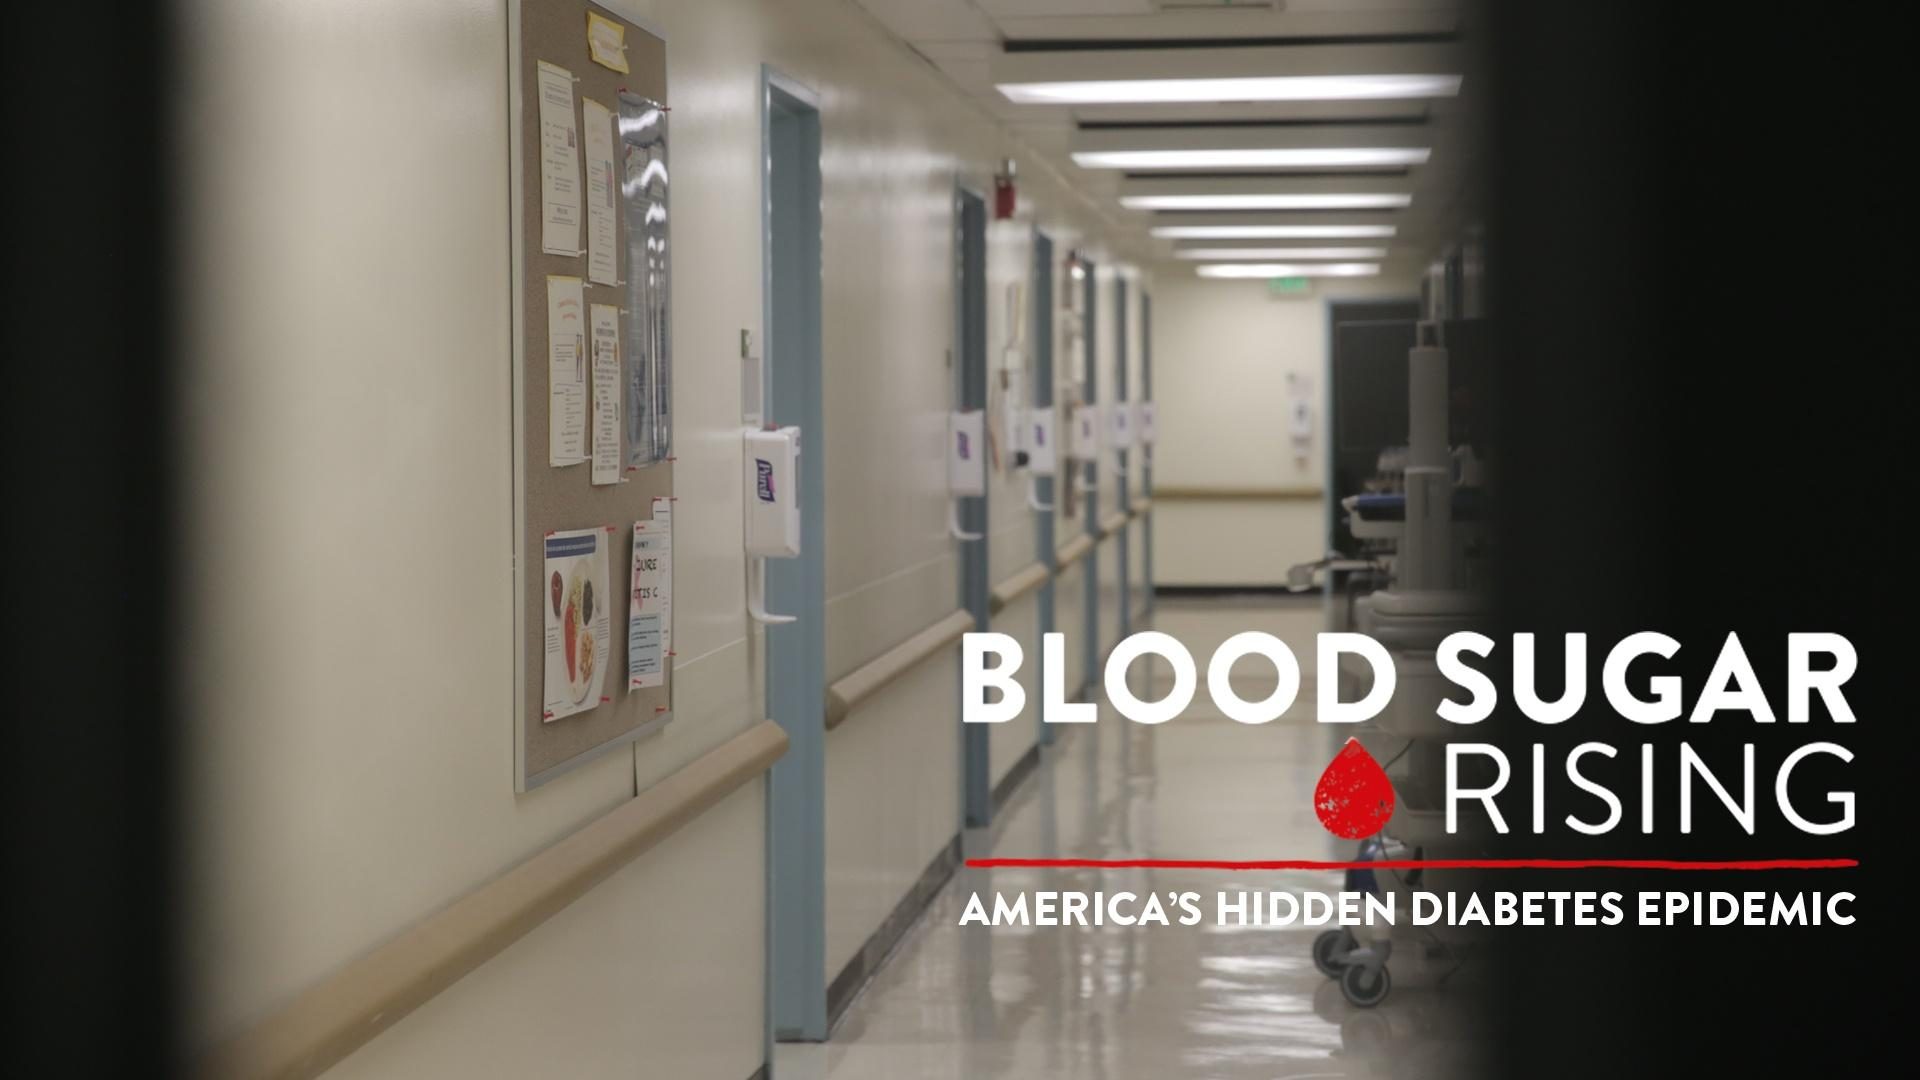 The Blood Sugar Rising Logo over a photo of a hospital hallway